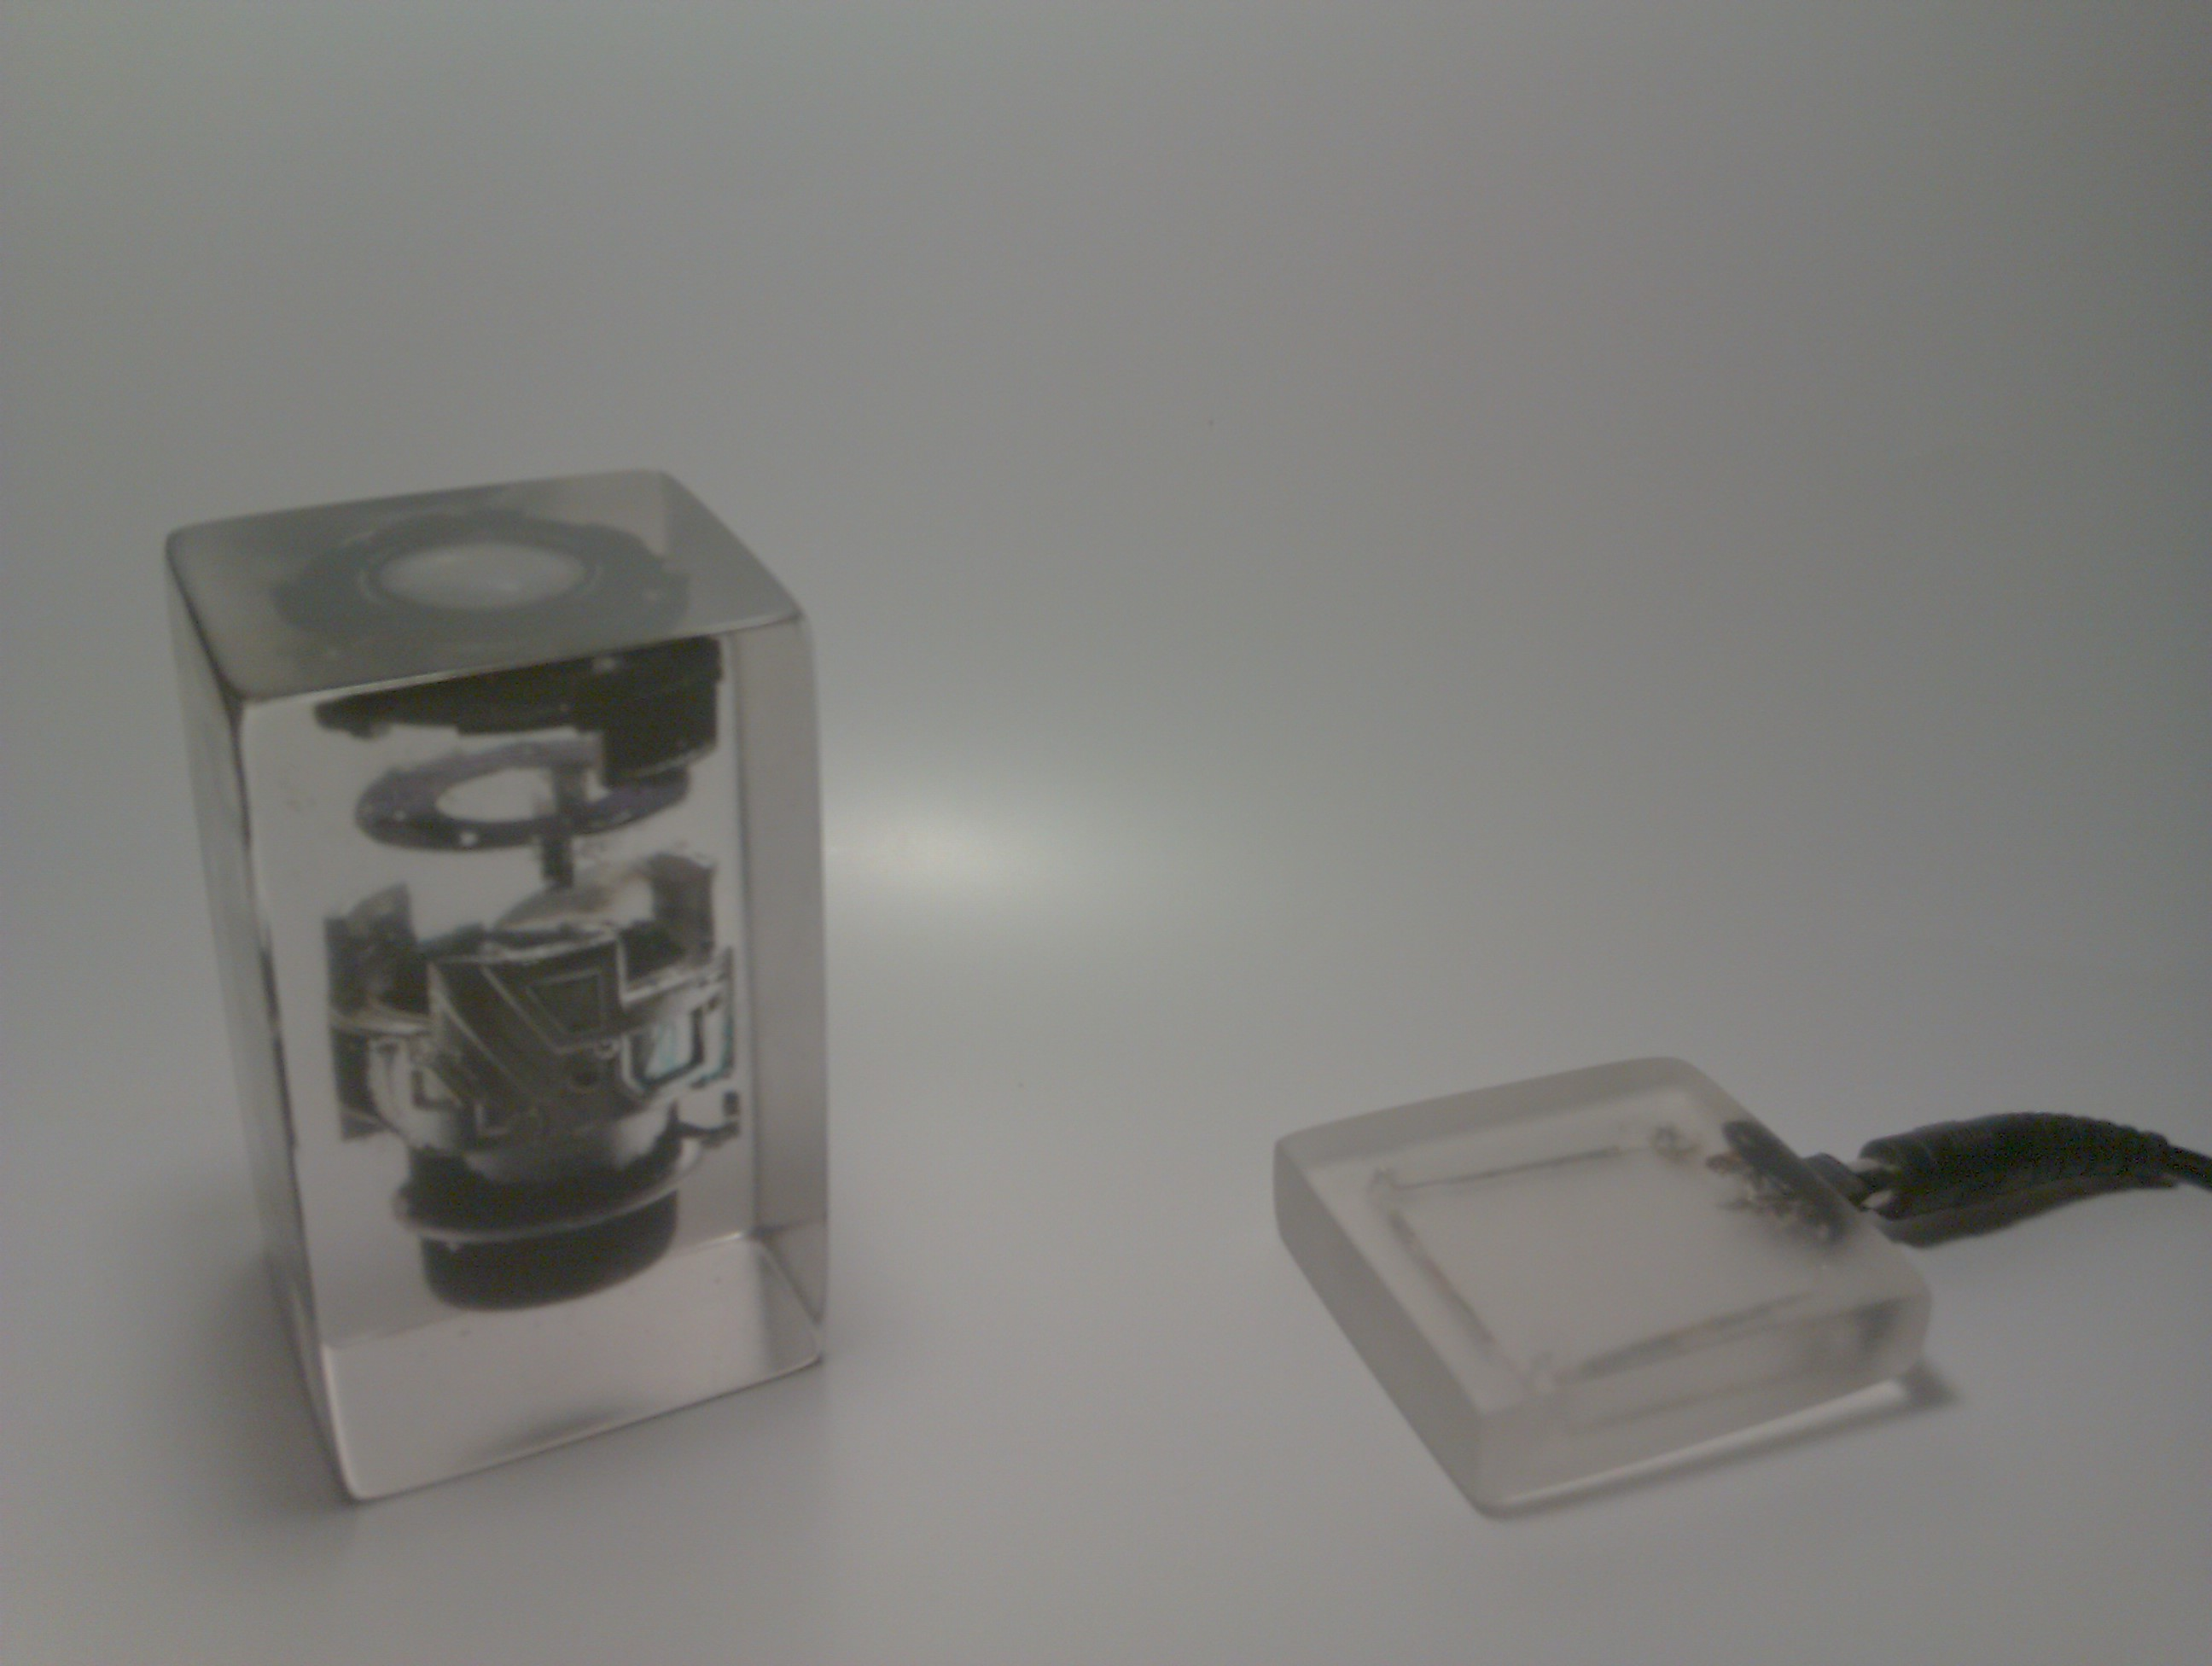 Picture of Lens Aperture Exploded in Resin